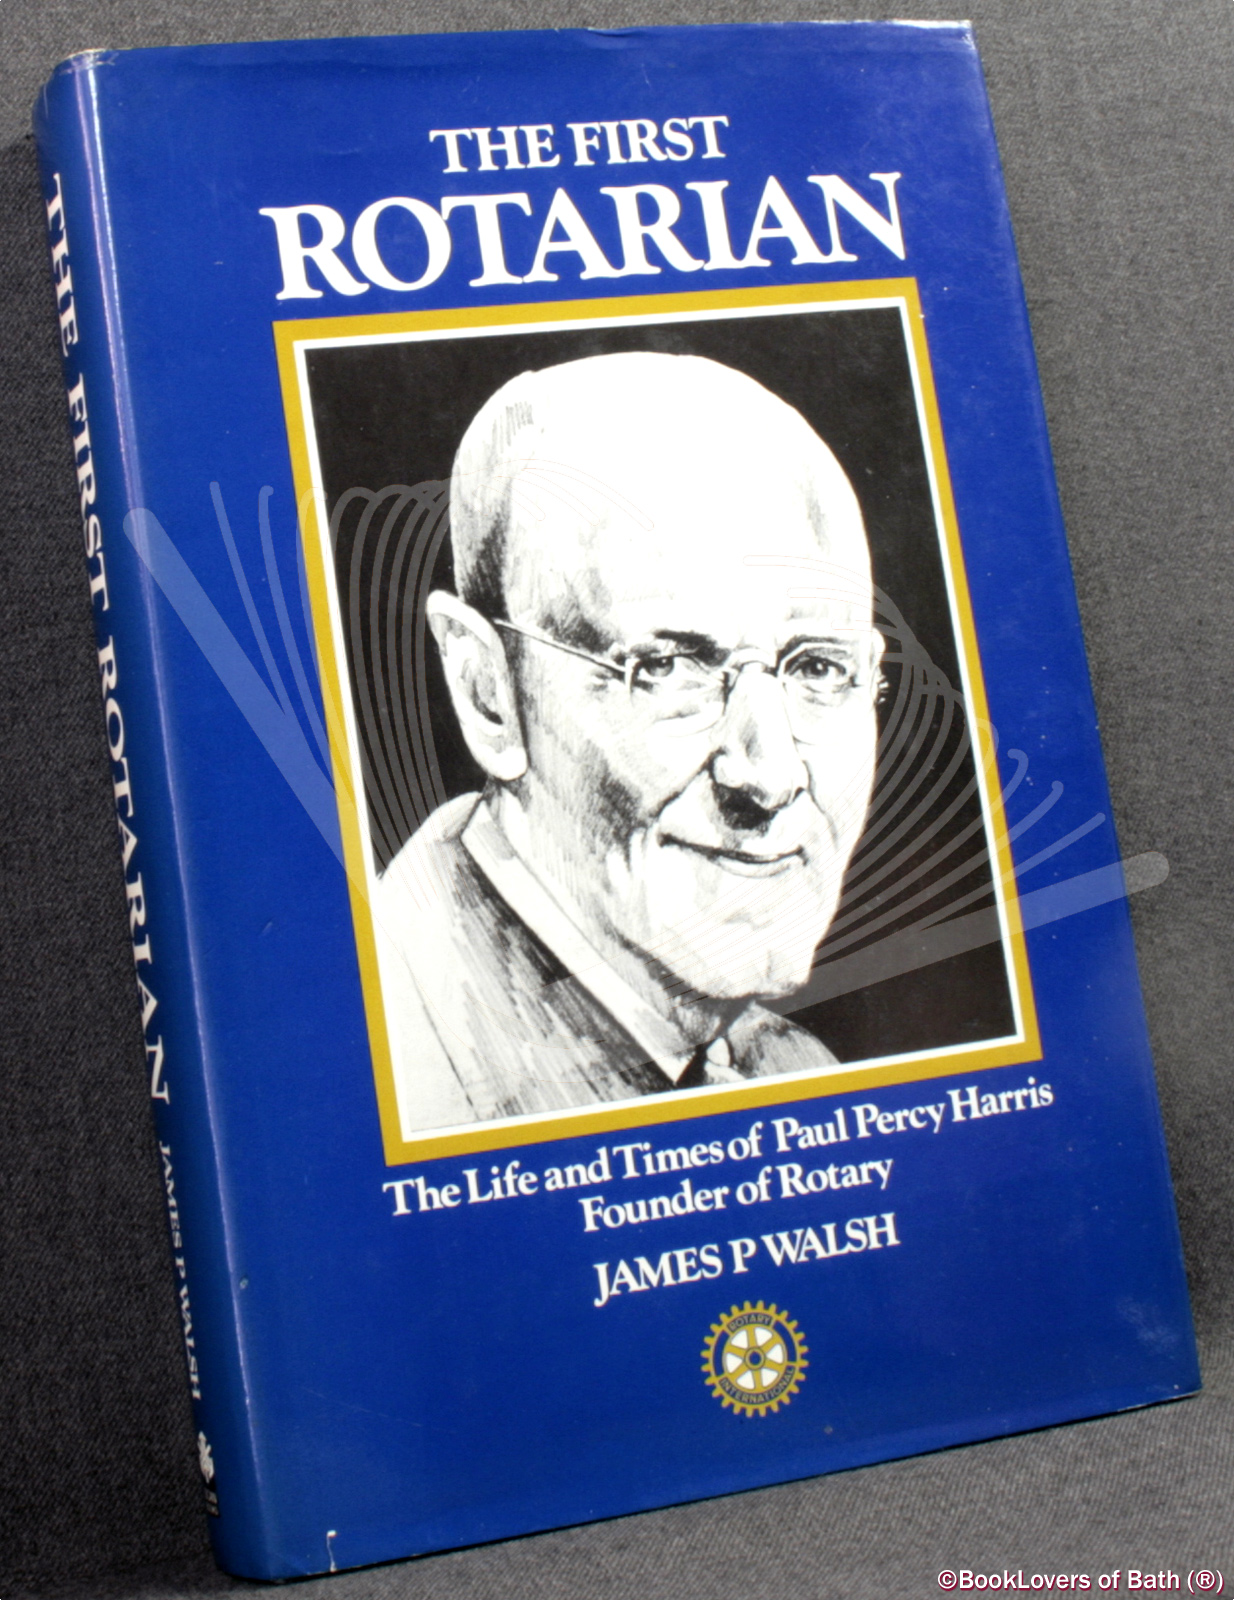 The First Rotarian: The Life and Times of Paul Percy Harris, Founder of Rotary - James P. [Patrick] Walsh